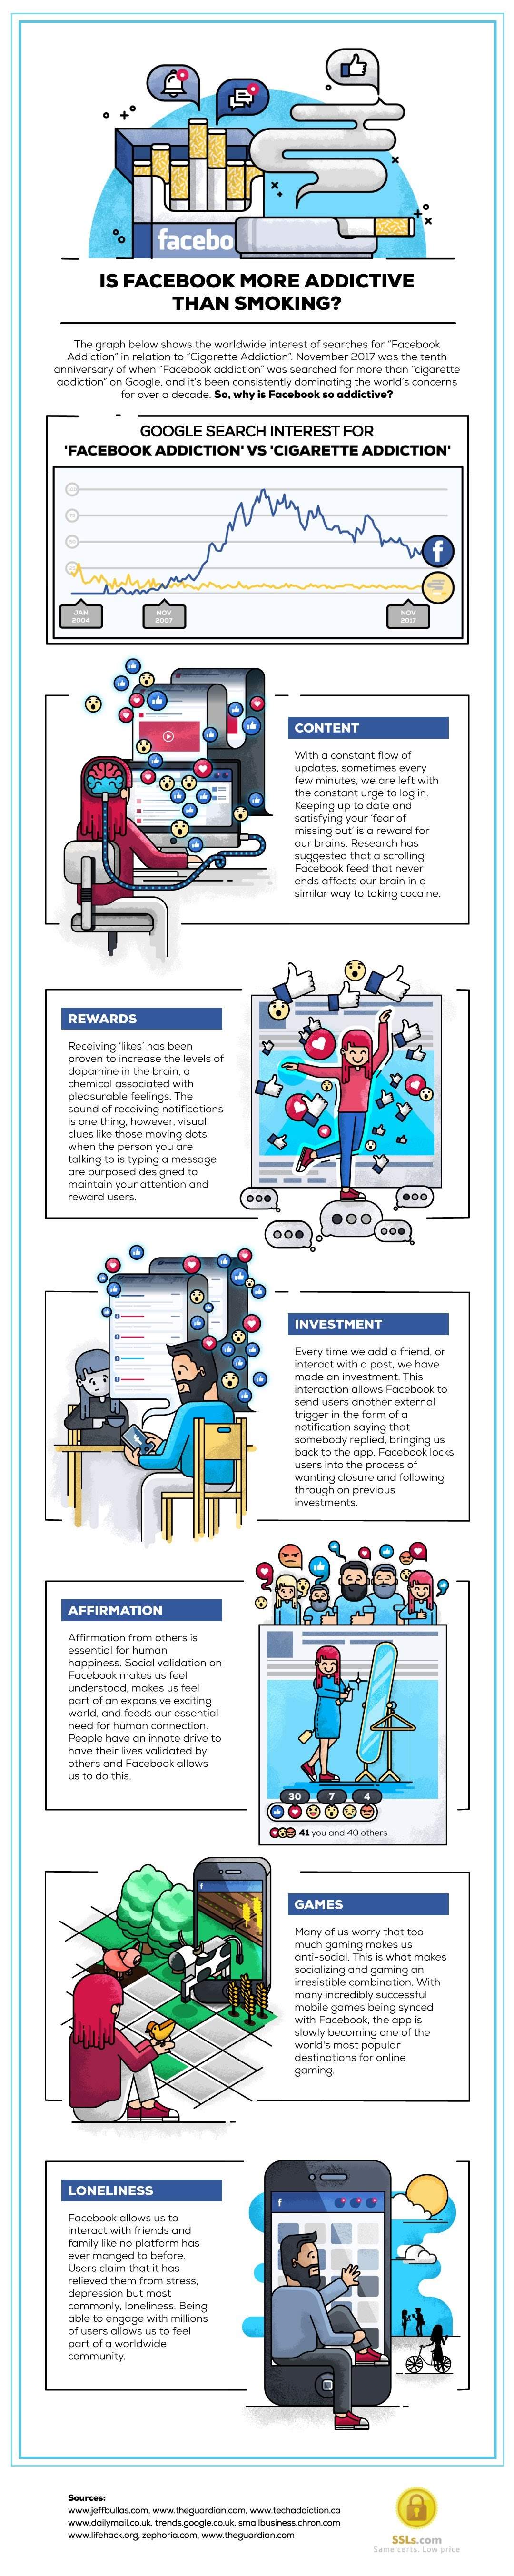 """10 Years of """"Facebook Addiction"""" Google Searches Outranking """"Smoking Addiction"""" - #infographic"""